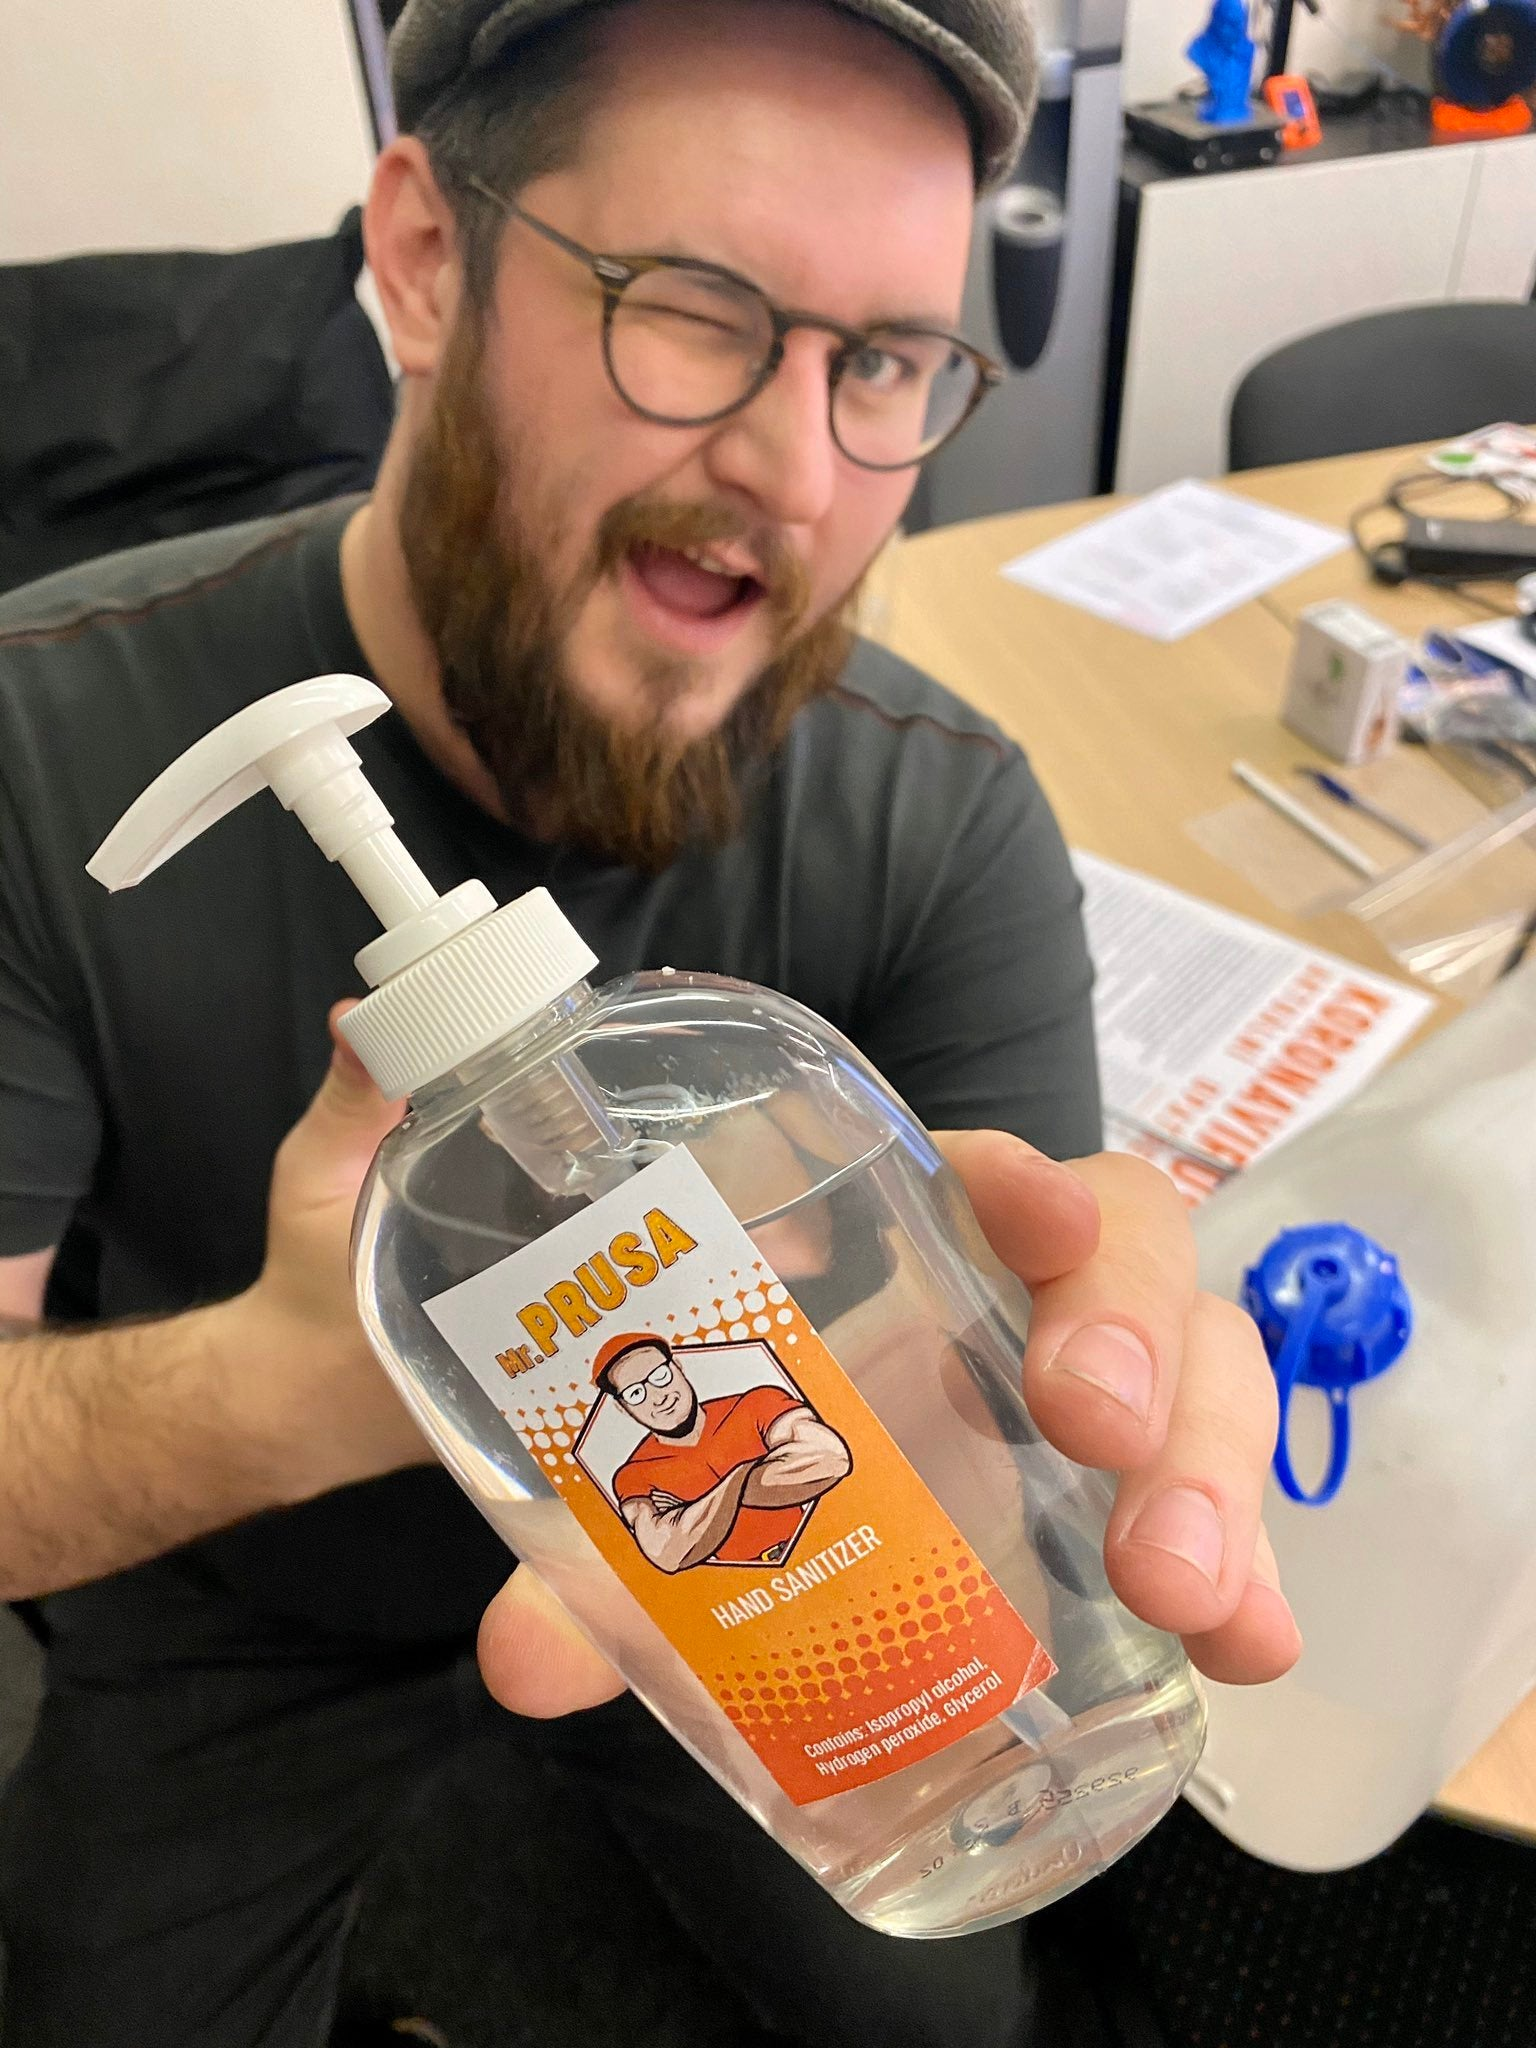 Prusa Research makes hand sanitizer to meet marketing demand